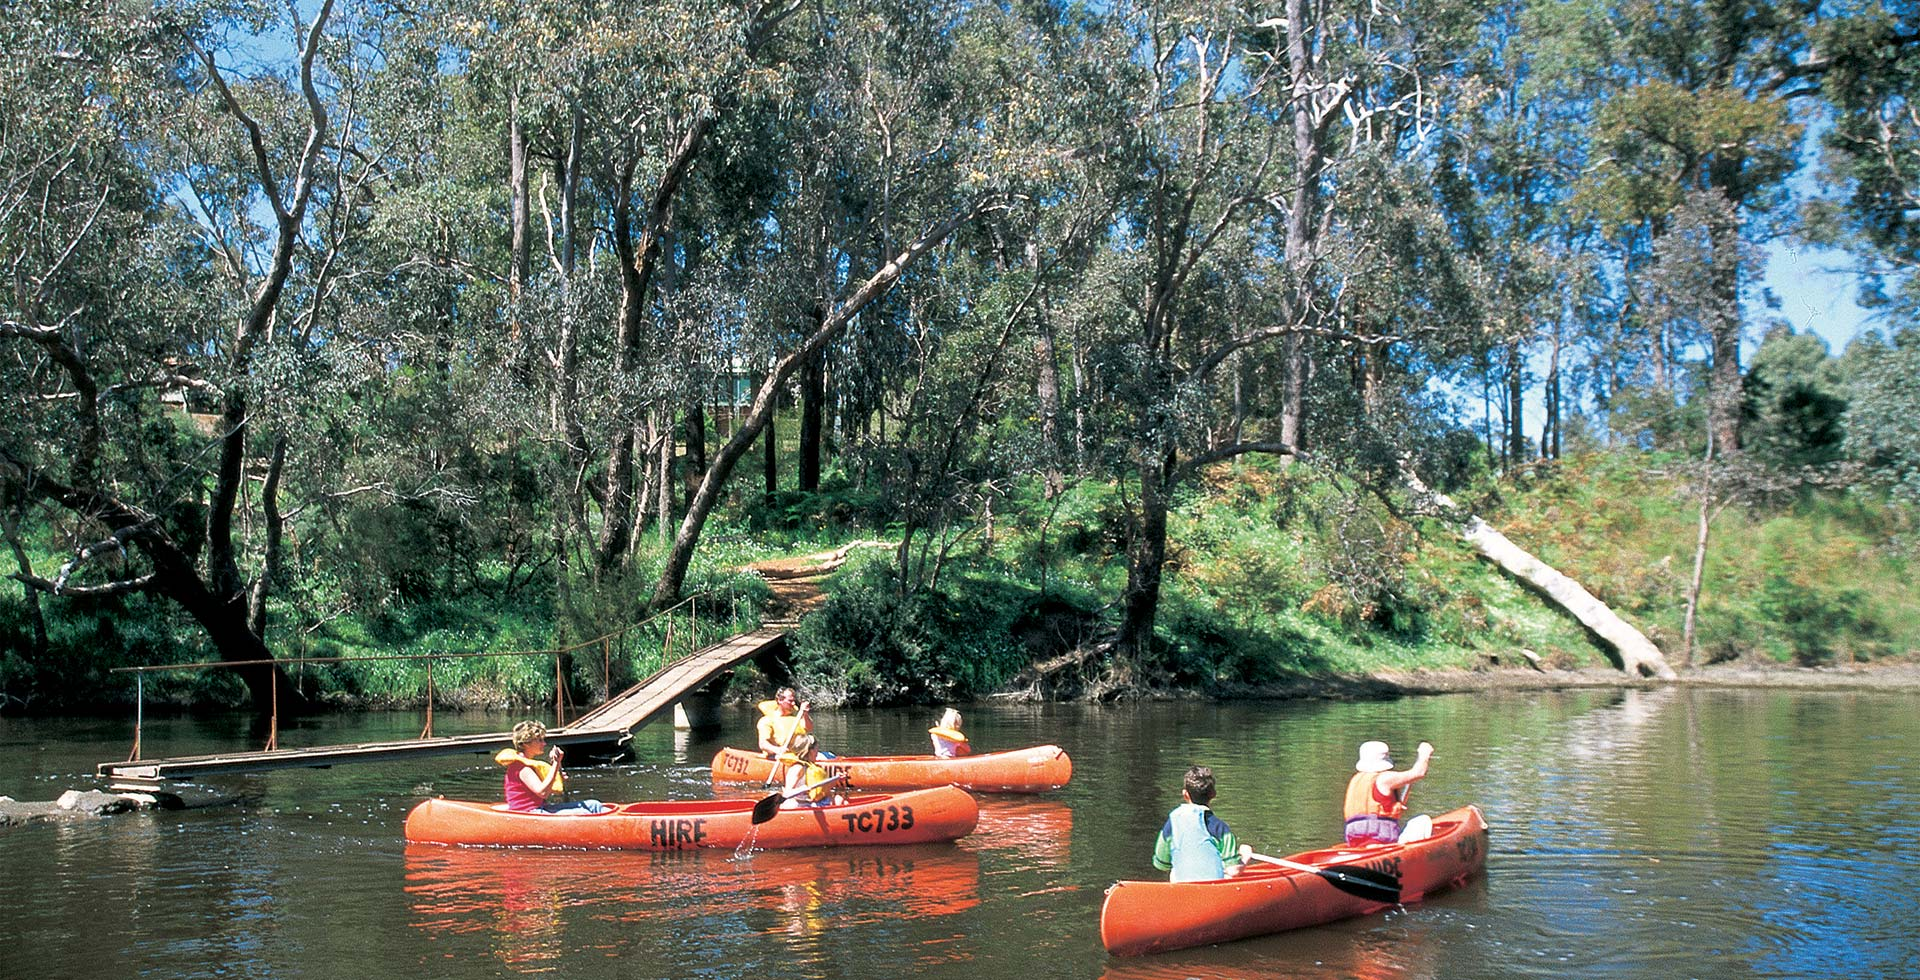 Bring your family to canoe down Blackwood River, Augusta